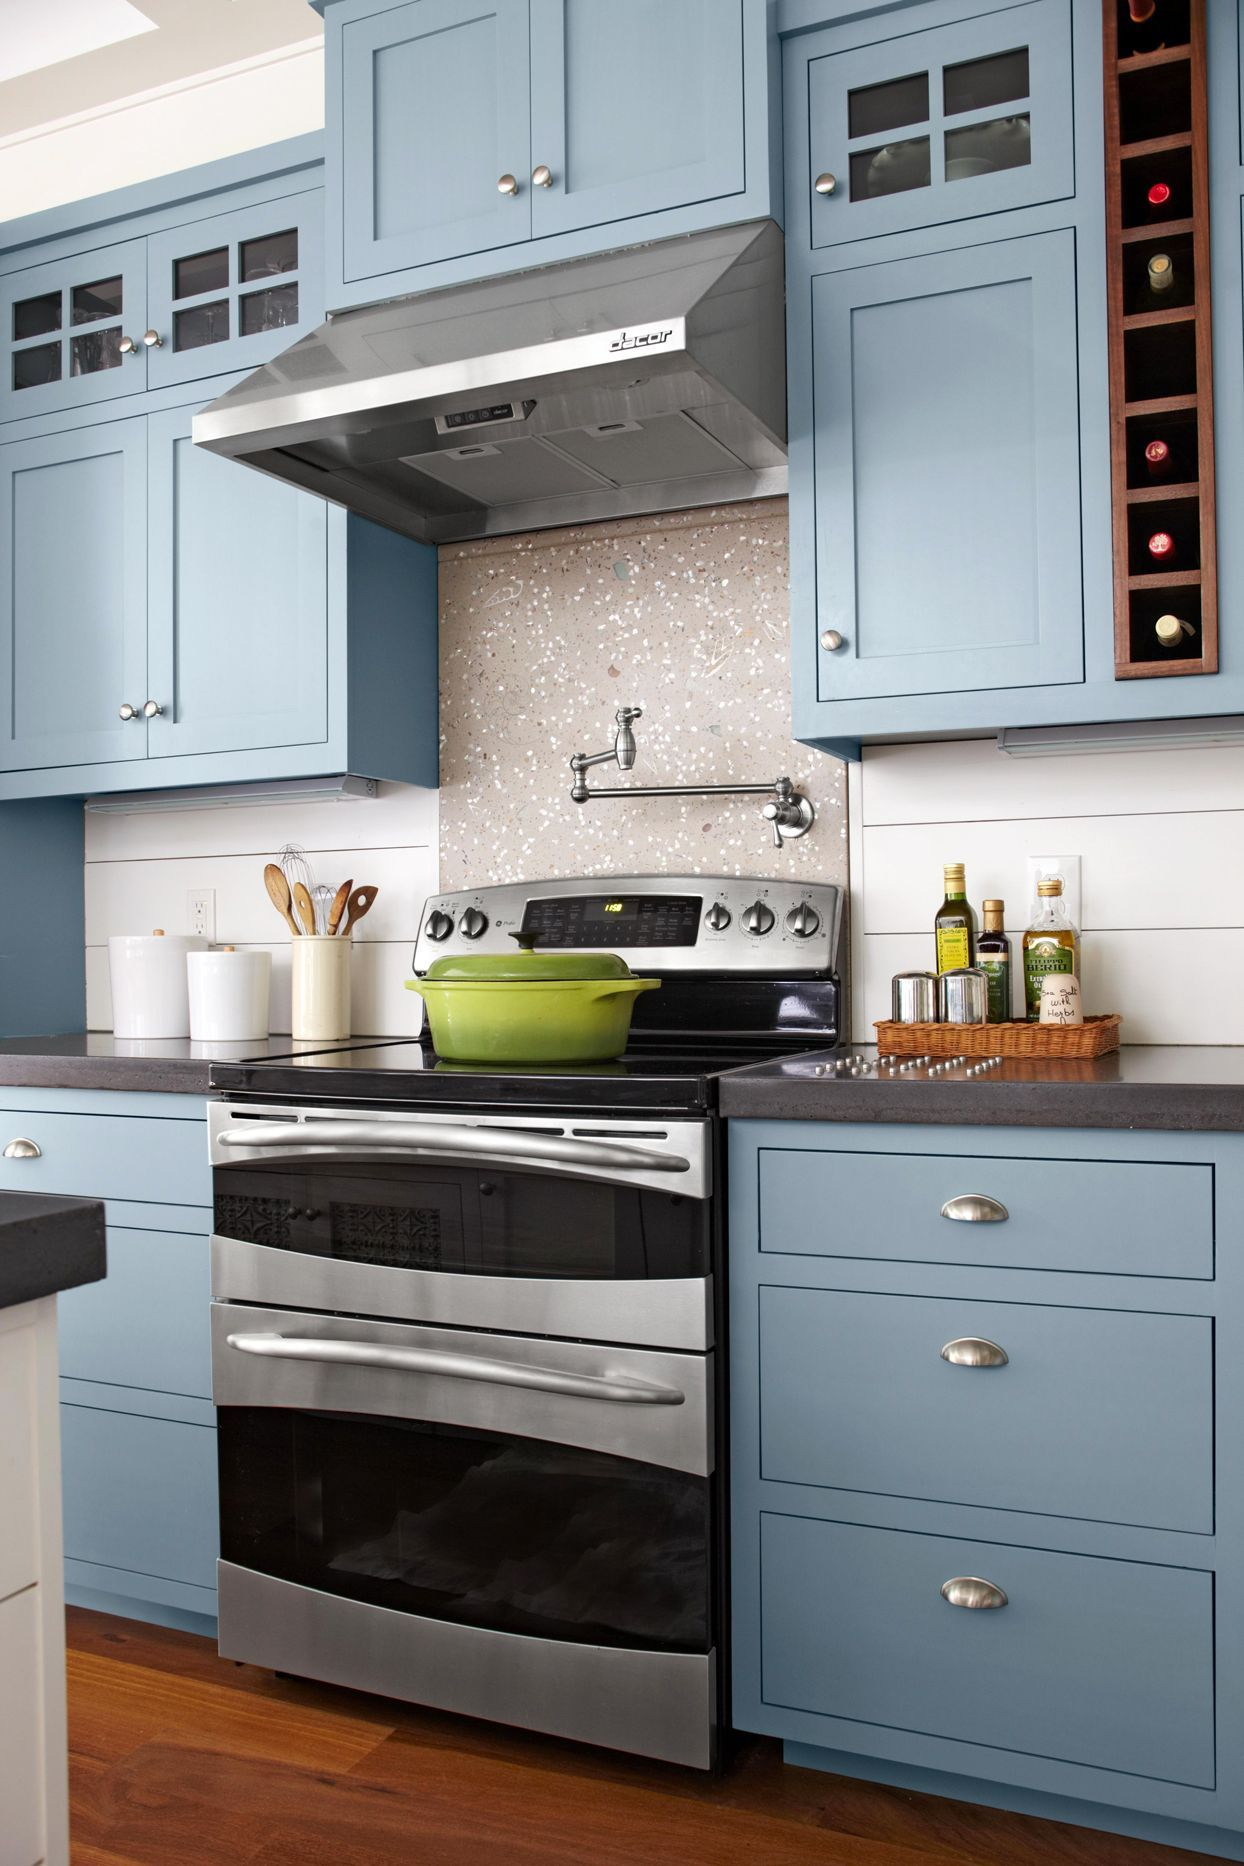 19 Popular Kitchen Cabinet Colors With Long Lasting Appeal In 2020 Kitchen Cabinet Colors Kitchen Cabinet Interior Painted Kitchen Cabinets Colors